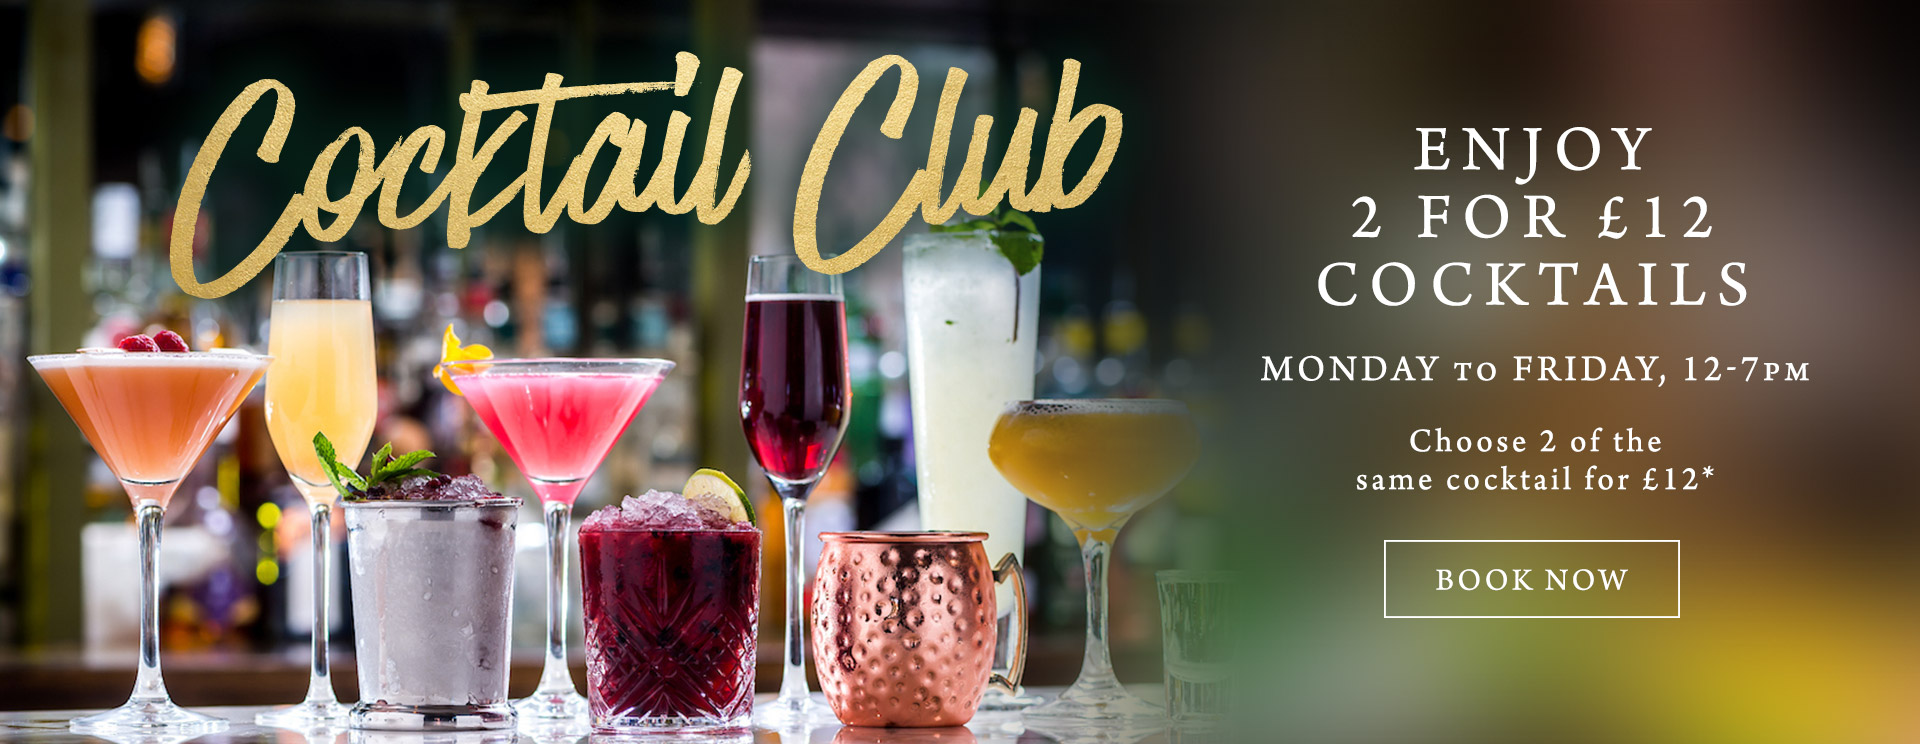 2 for £12 cocktails at The Bulls Head